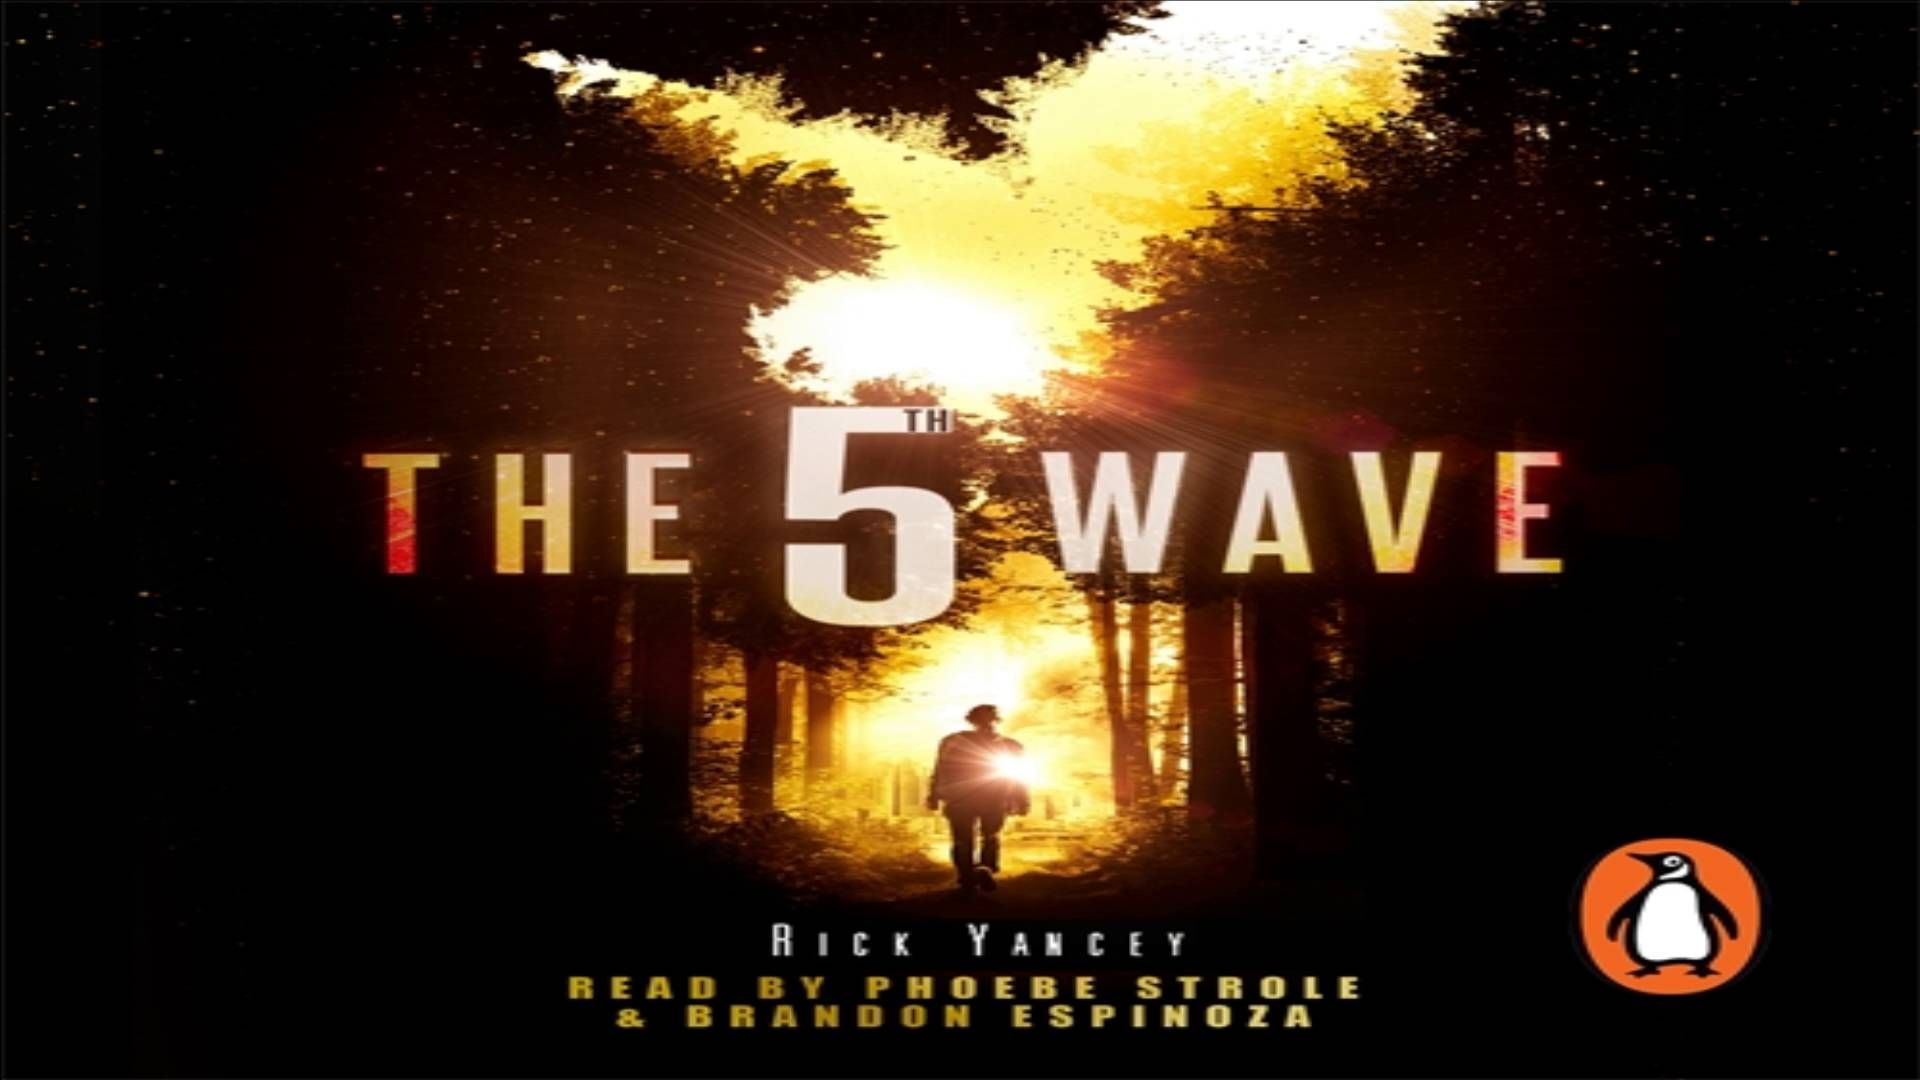 the 5th wave audiobook